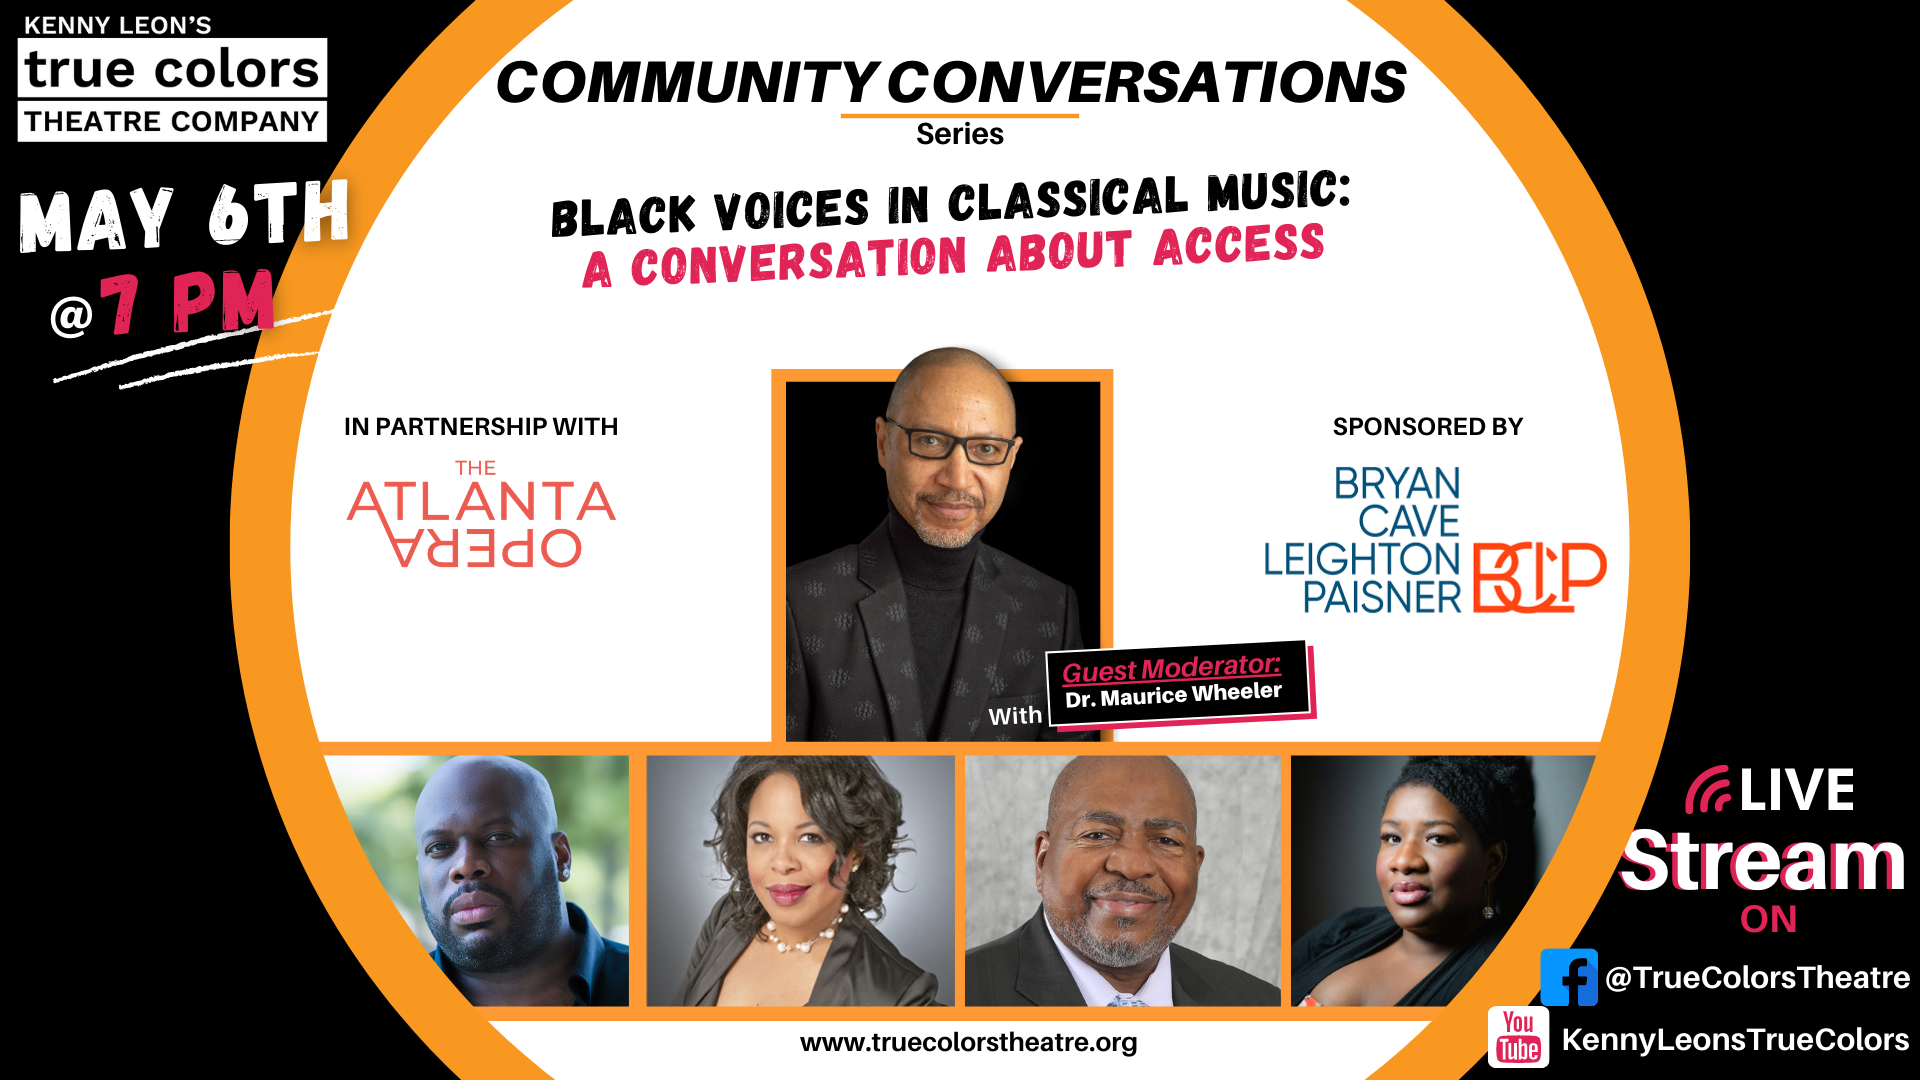 Black Voices in Classical Music: A Conversation About Access